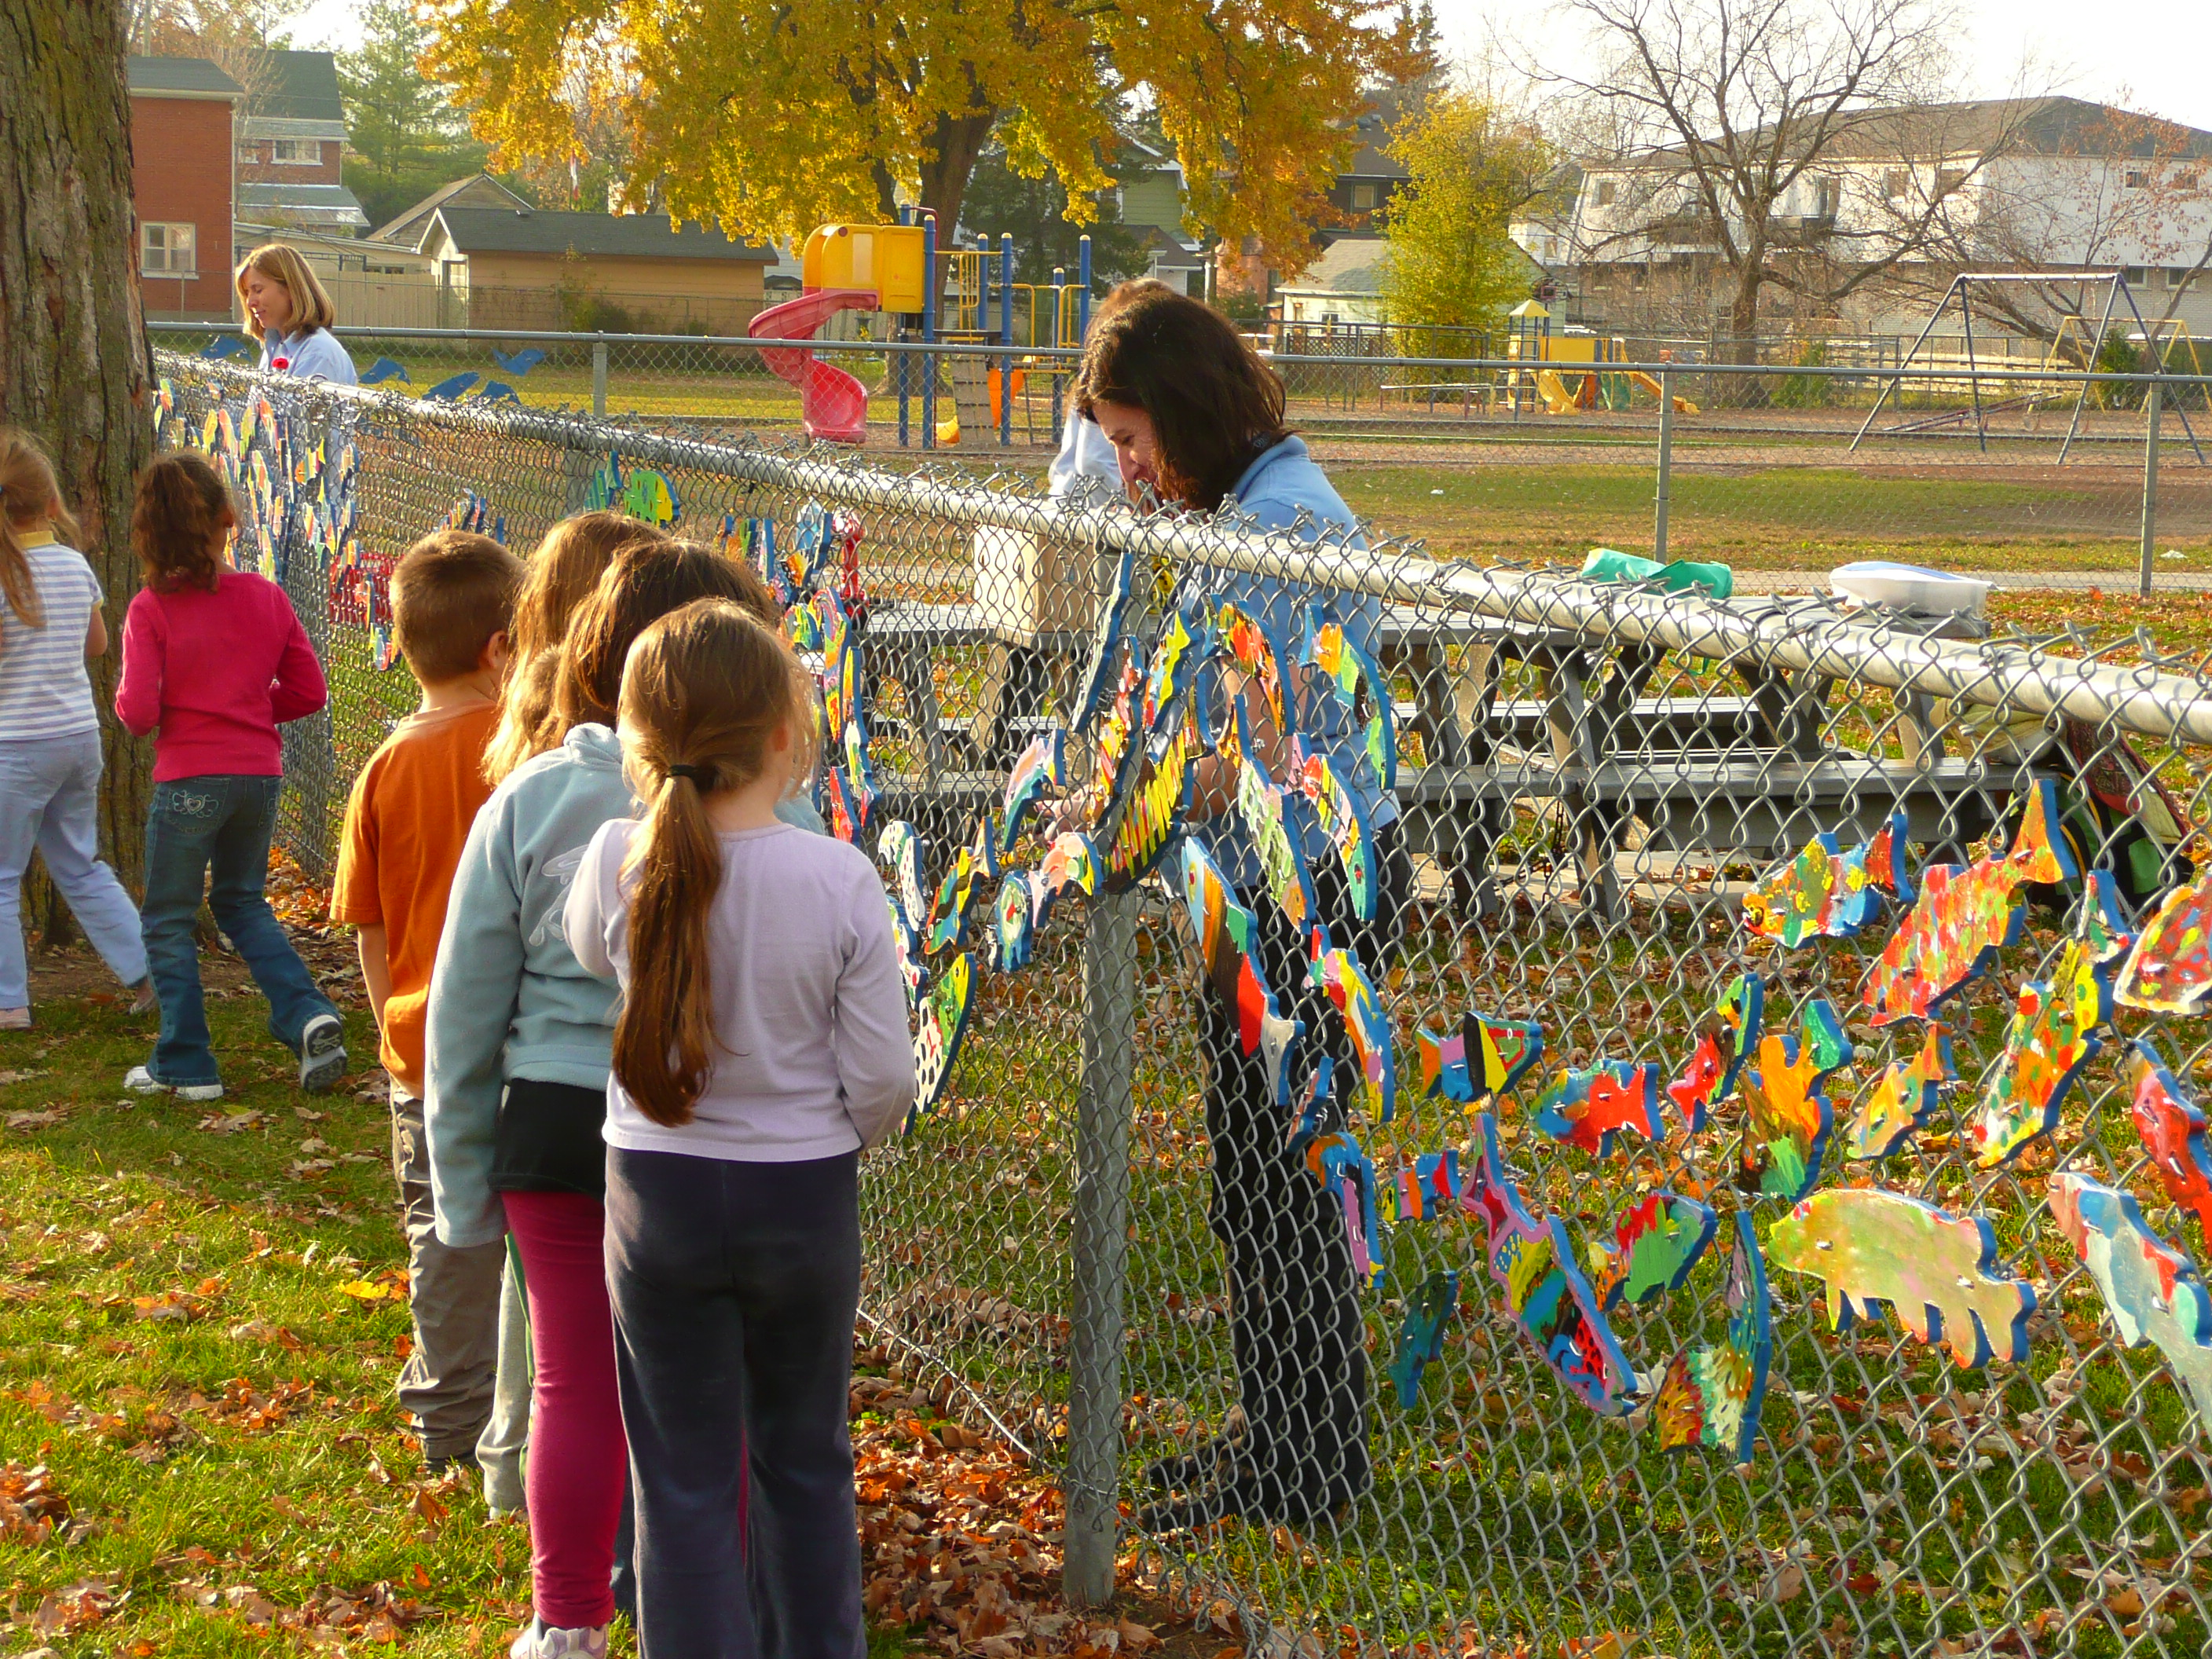 Children looking at painted fish on a fence infront of a school